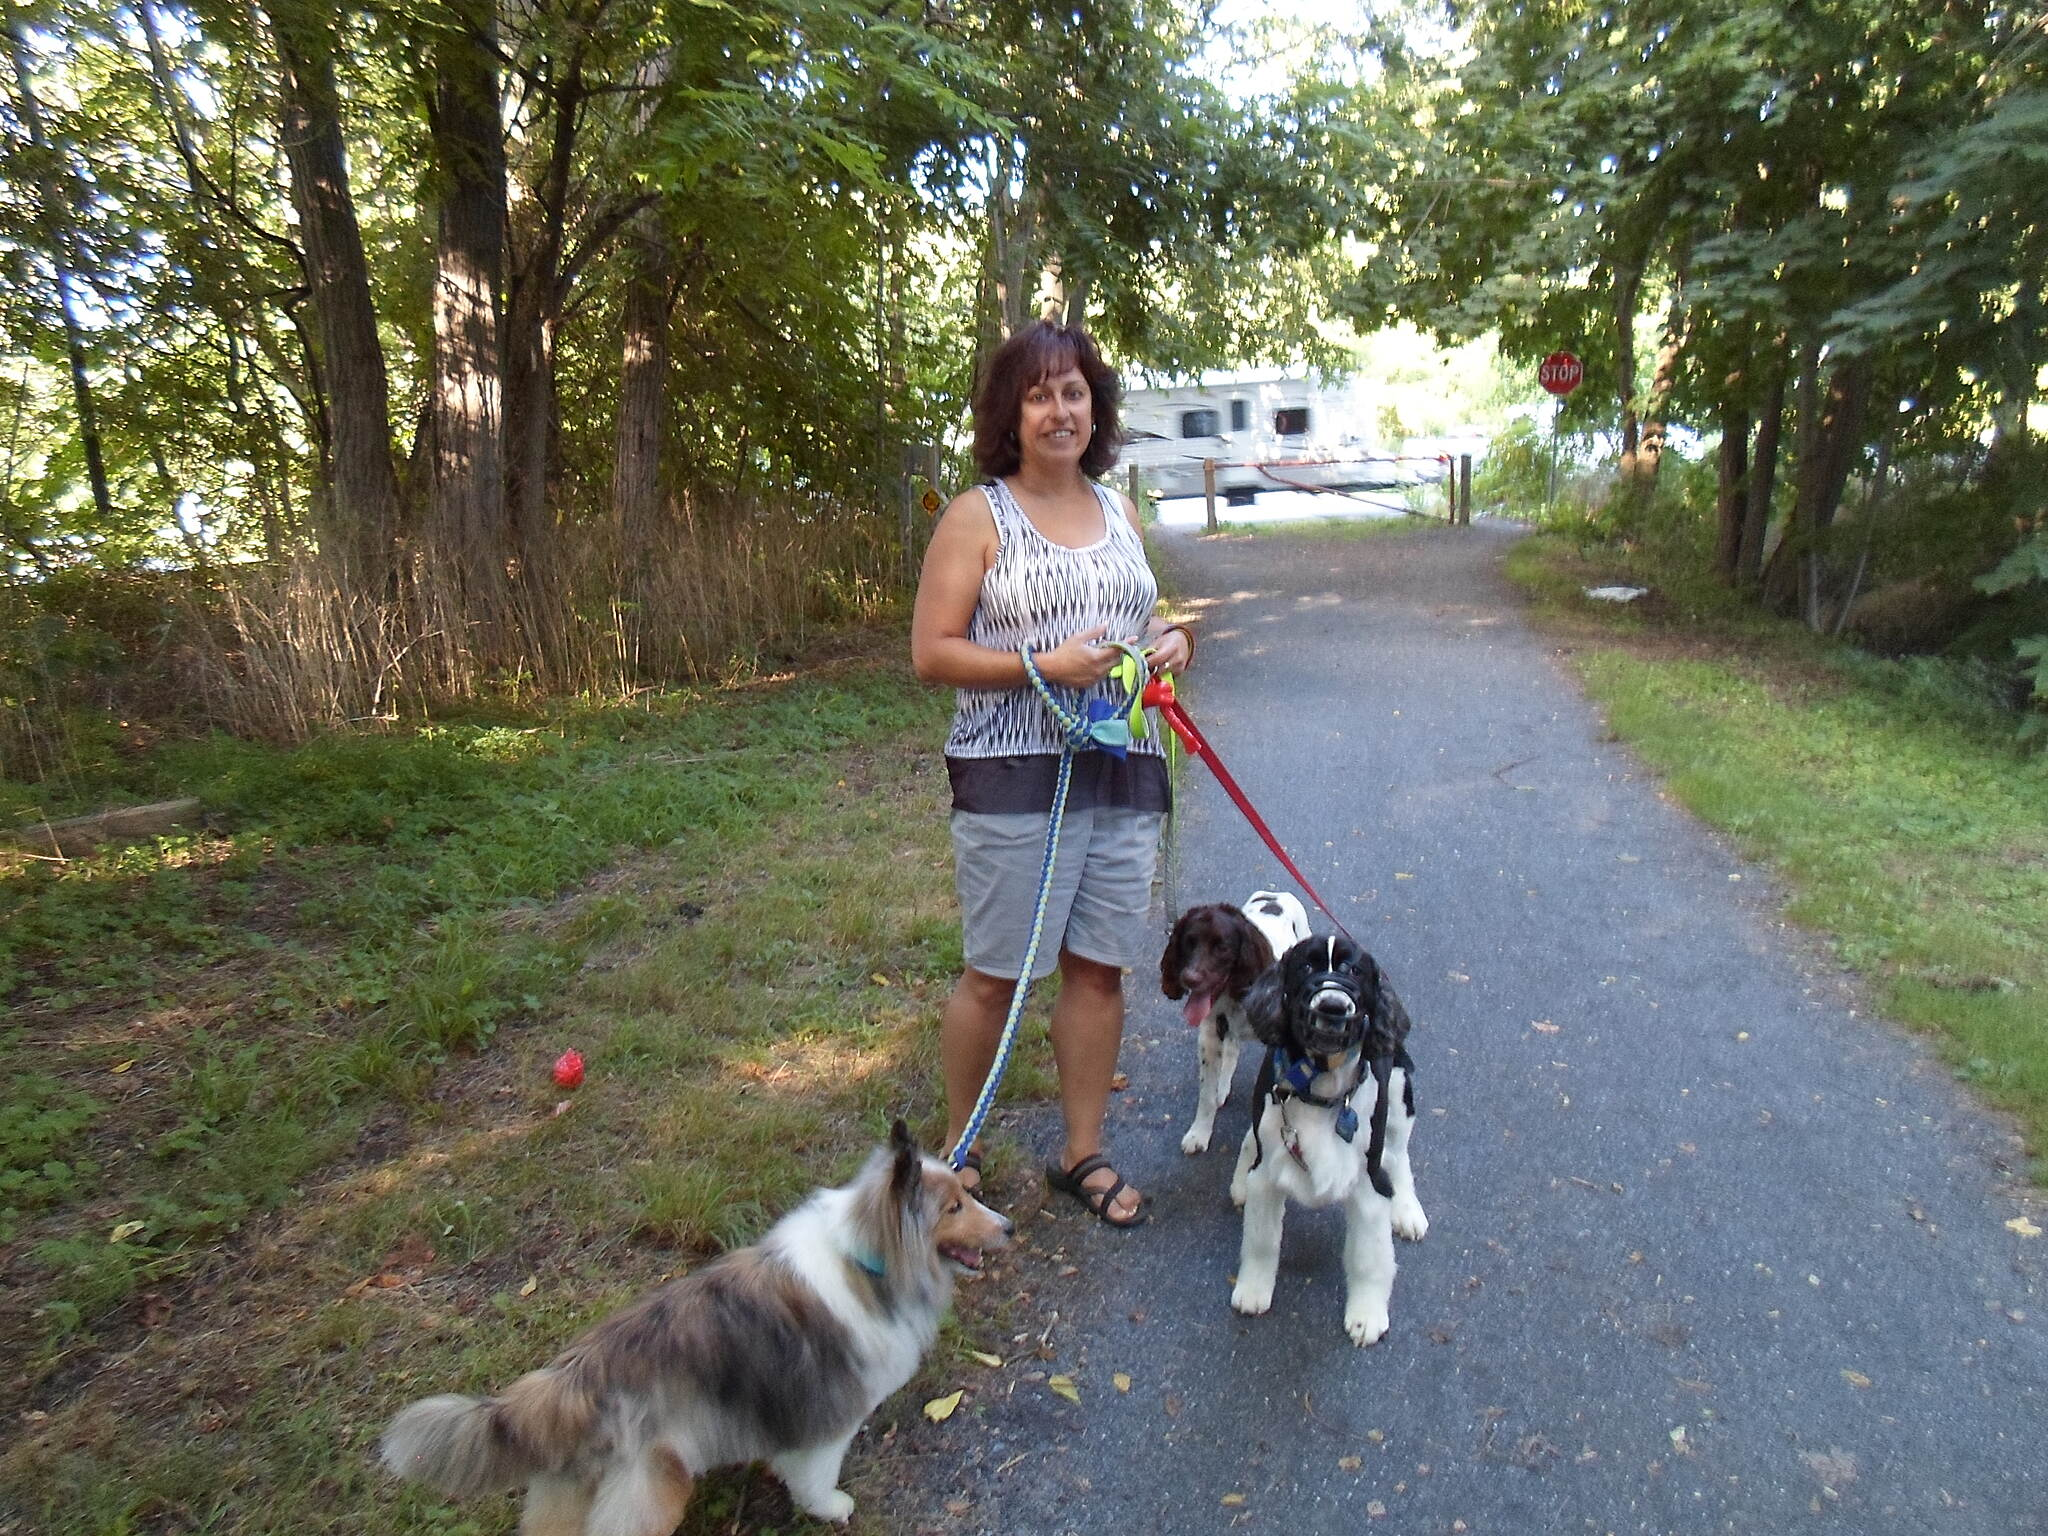 Lebanon Valley Rail-Trail Lebanon Valley Rail Trail This woman was spending the warm, summer evening walking her dogs along the trail in Colebrook. Taken Aug. 2015.